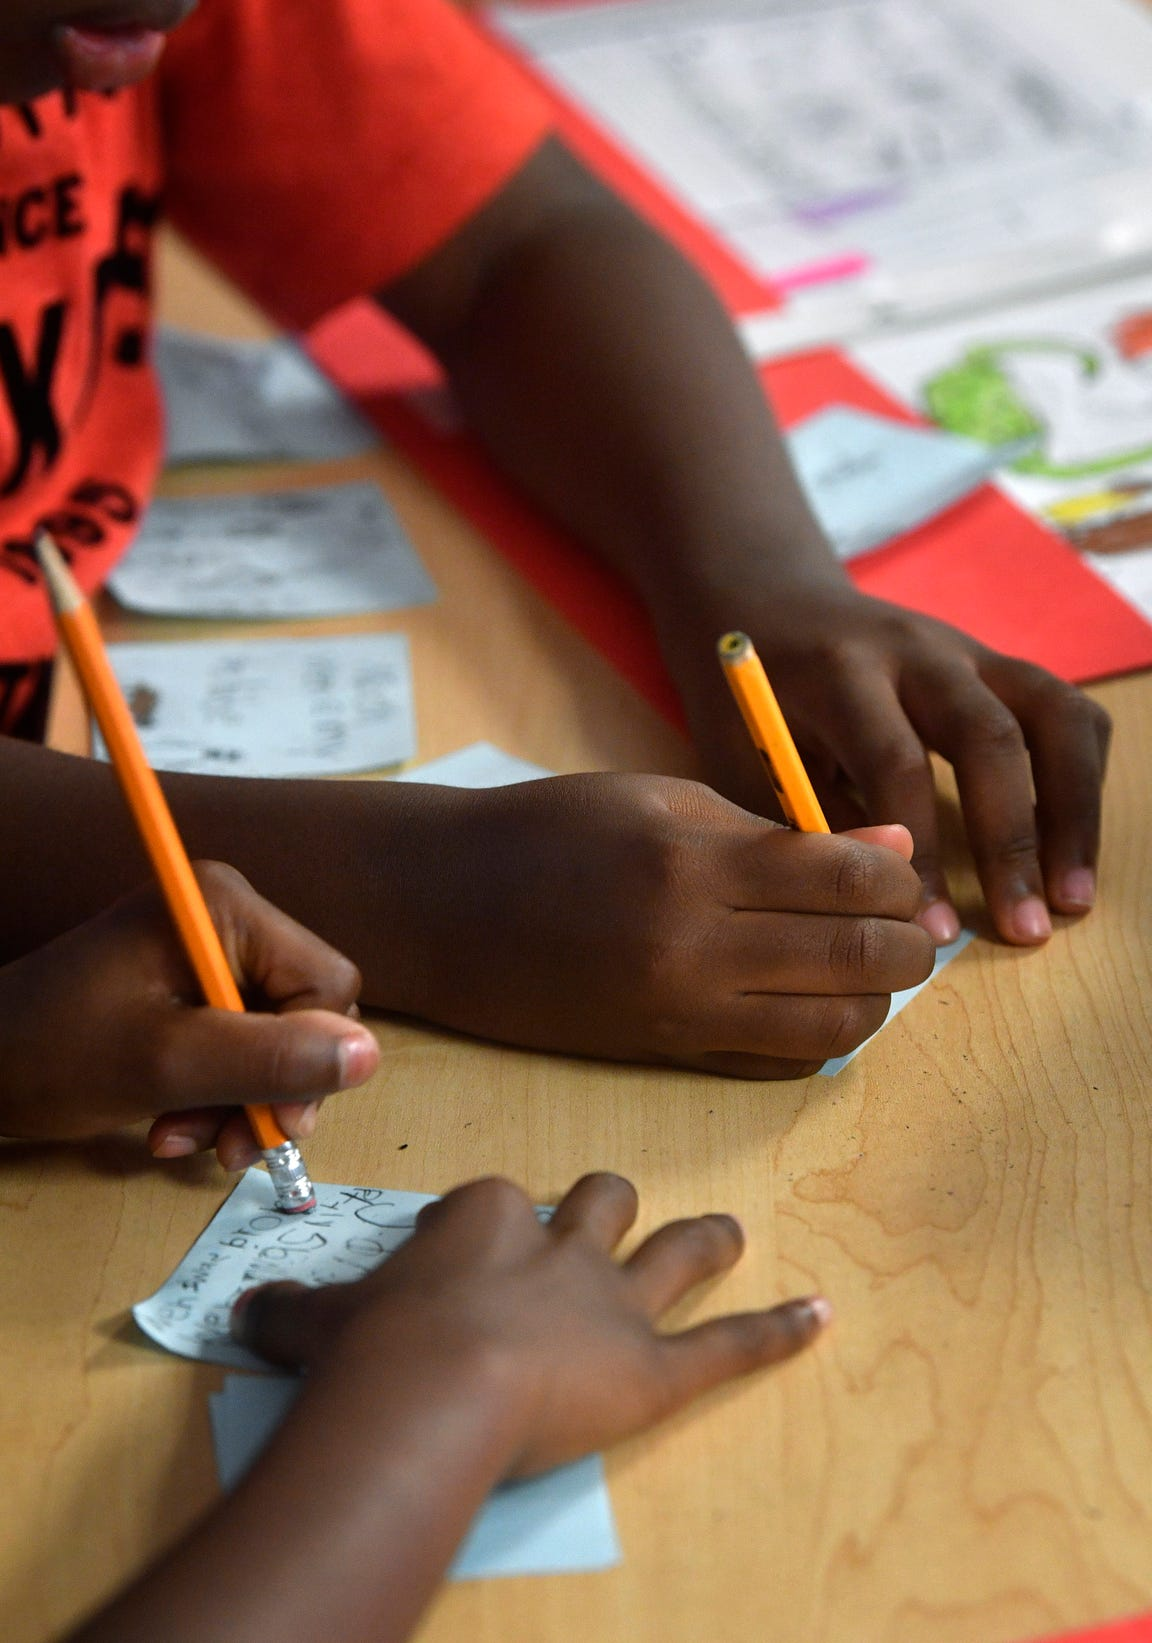 Children complete assignments at Explore charter school in East Nashville. Despite cuts to other programs, the Martha O'Bryan Center is expanding its charter school fundraising.